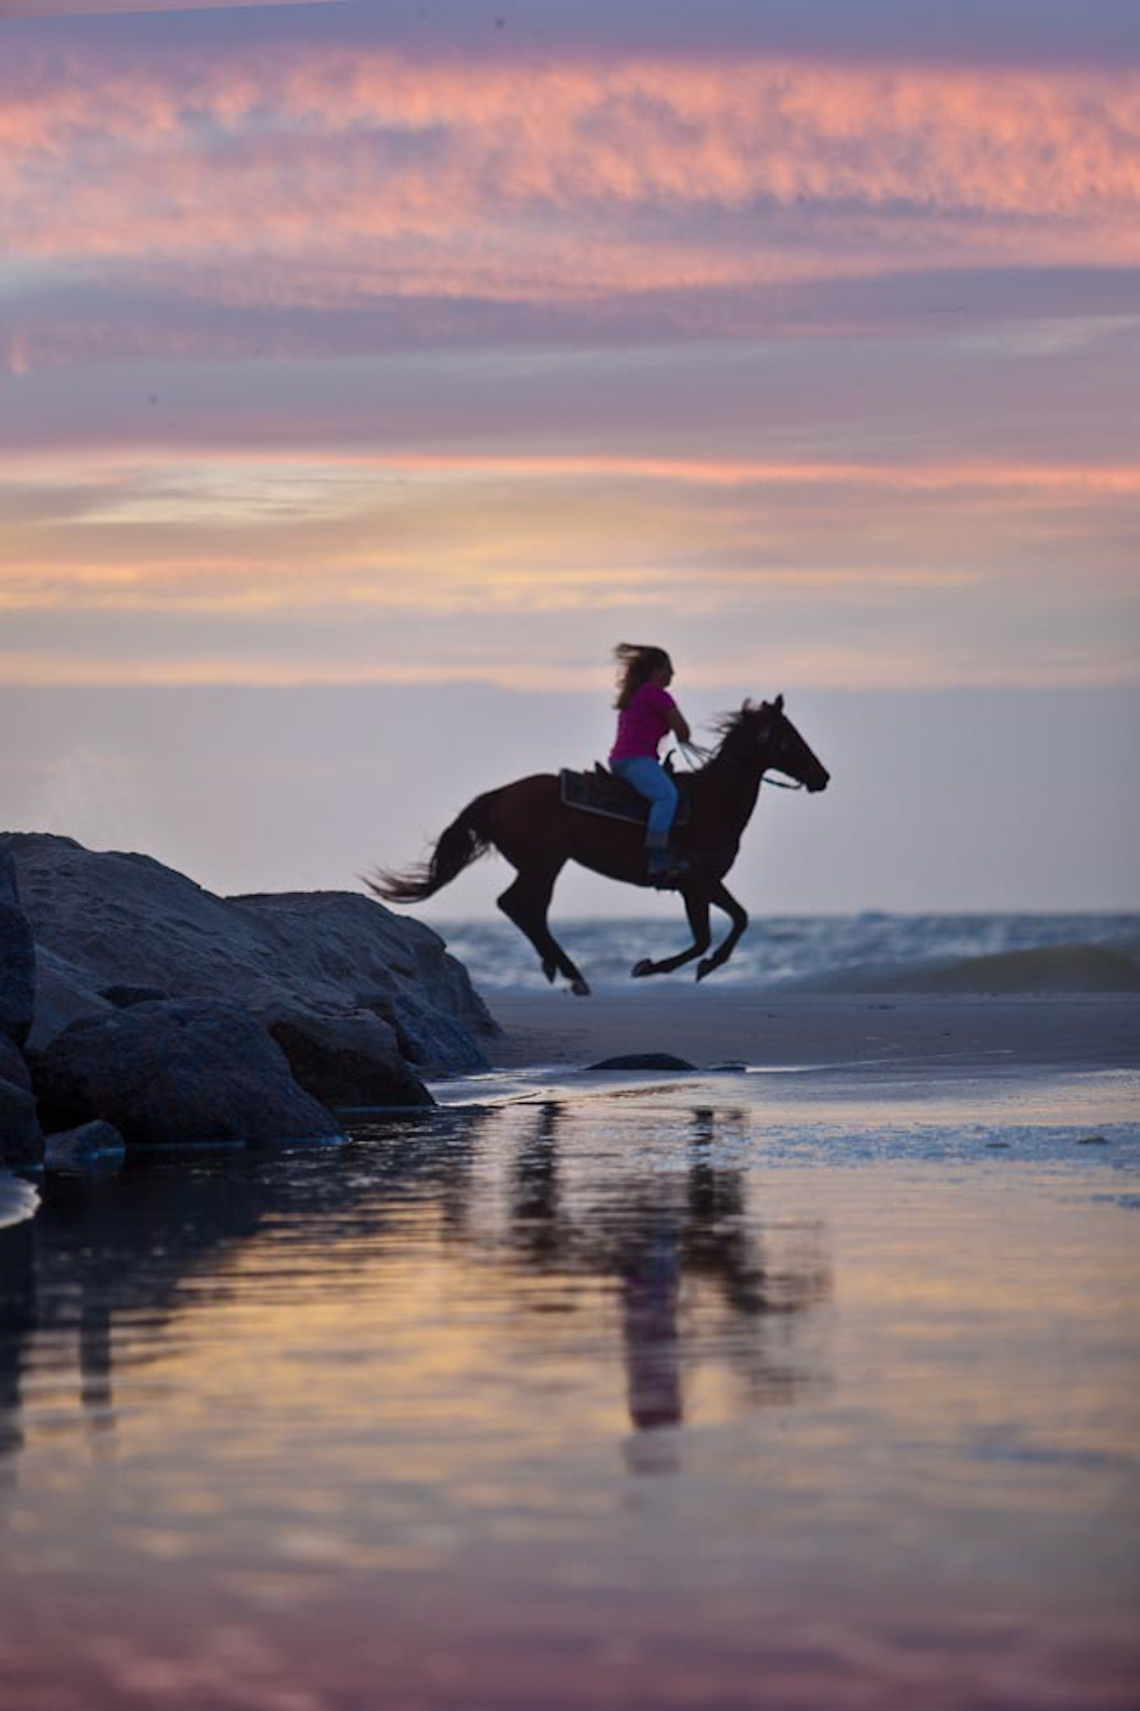 1_Surfside-canter-at-dawn